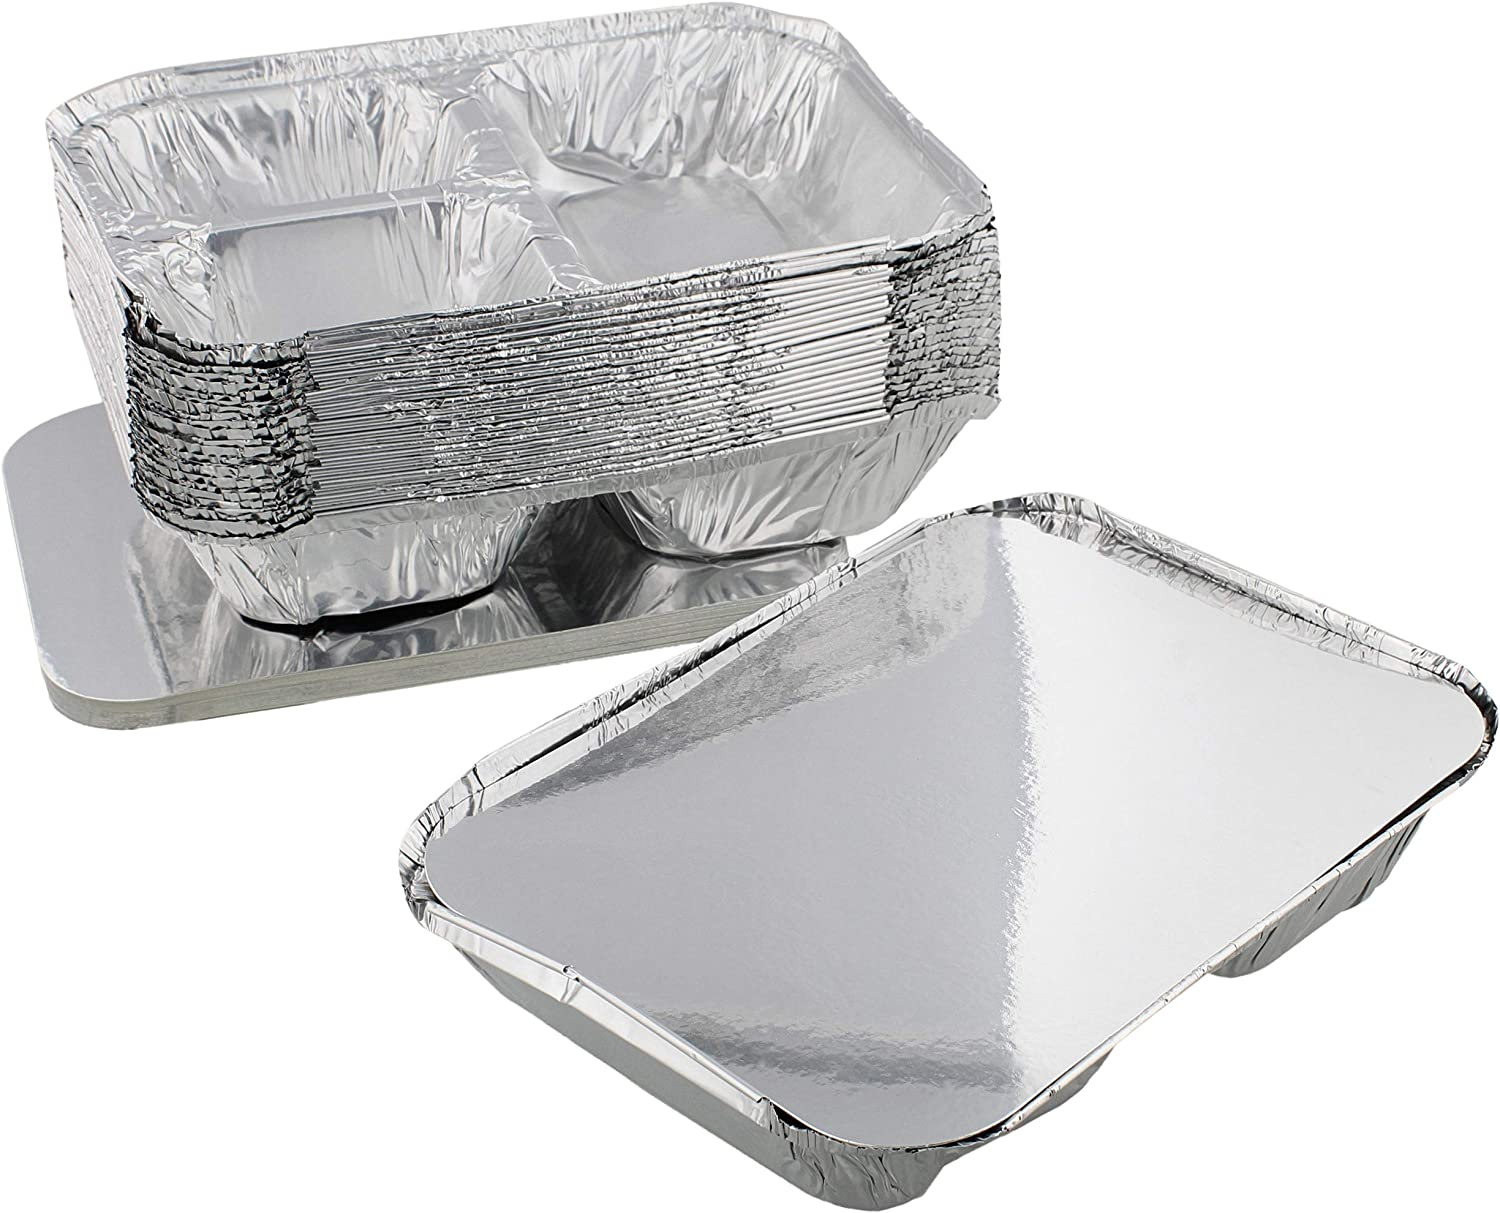 Lot45 Aluminum Catering Pan 3 Sections, 25pk - Disposable Aluminum Tray Foil Pans, Oven Pans Take Out Pans for Catering